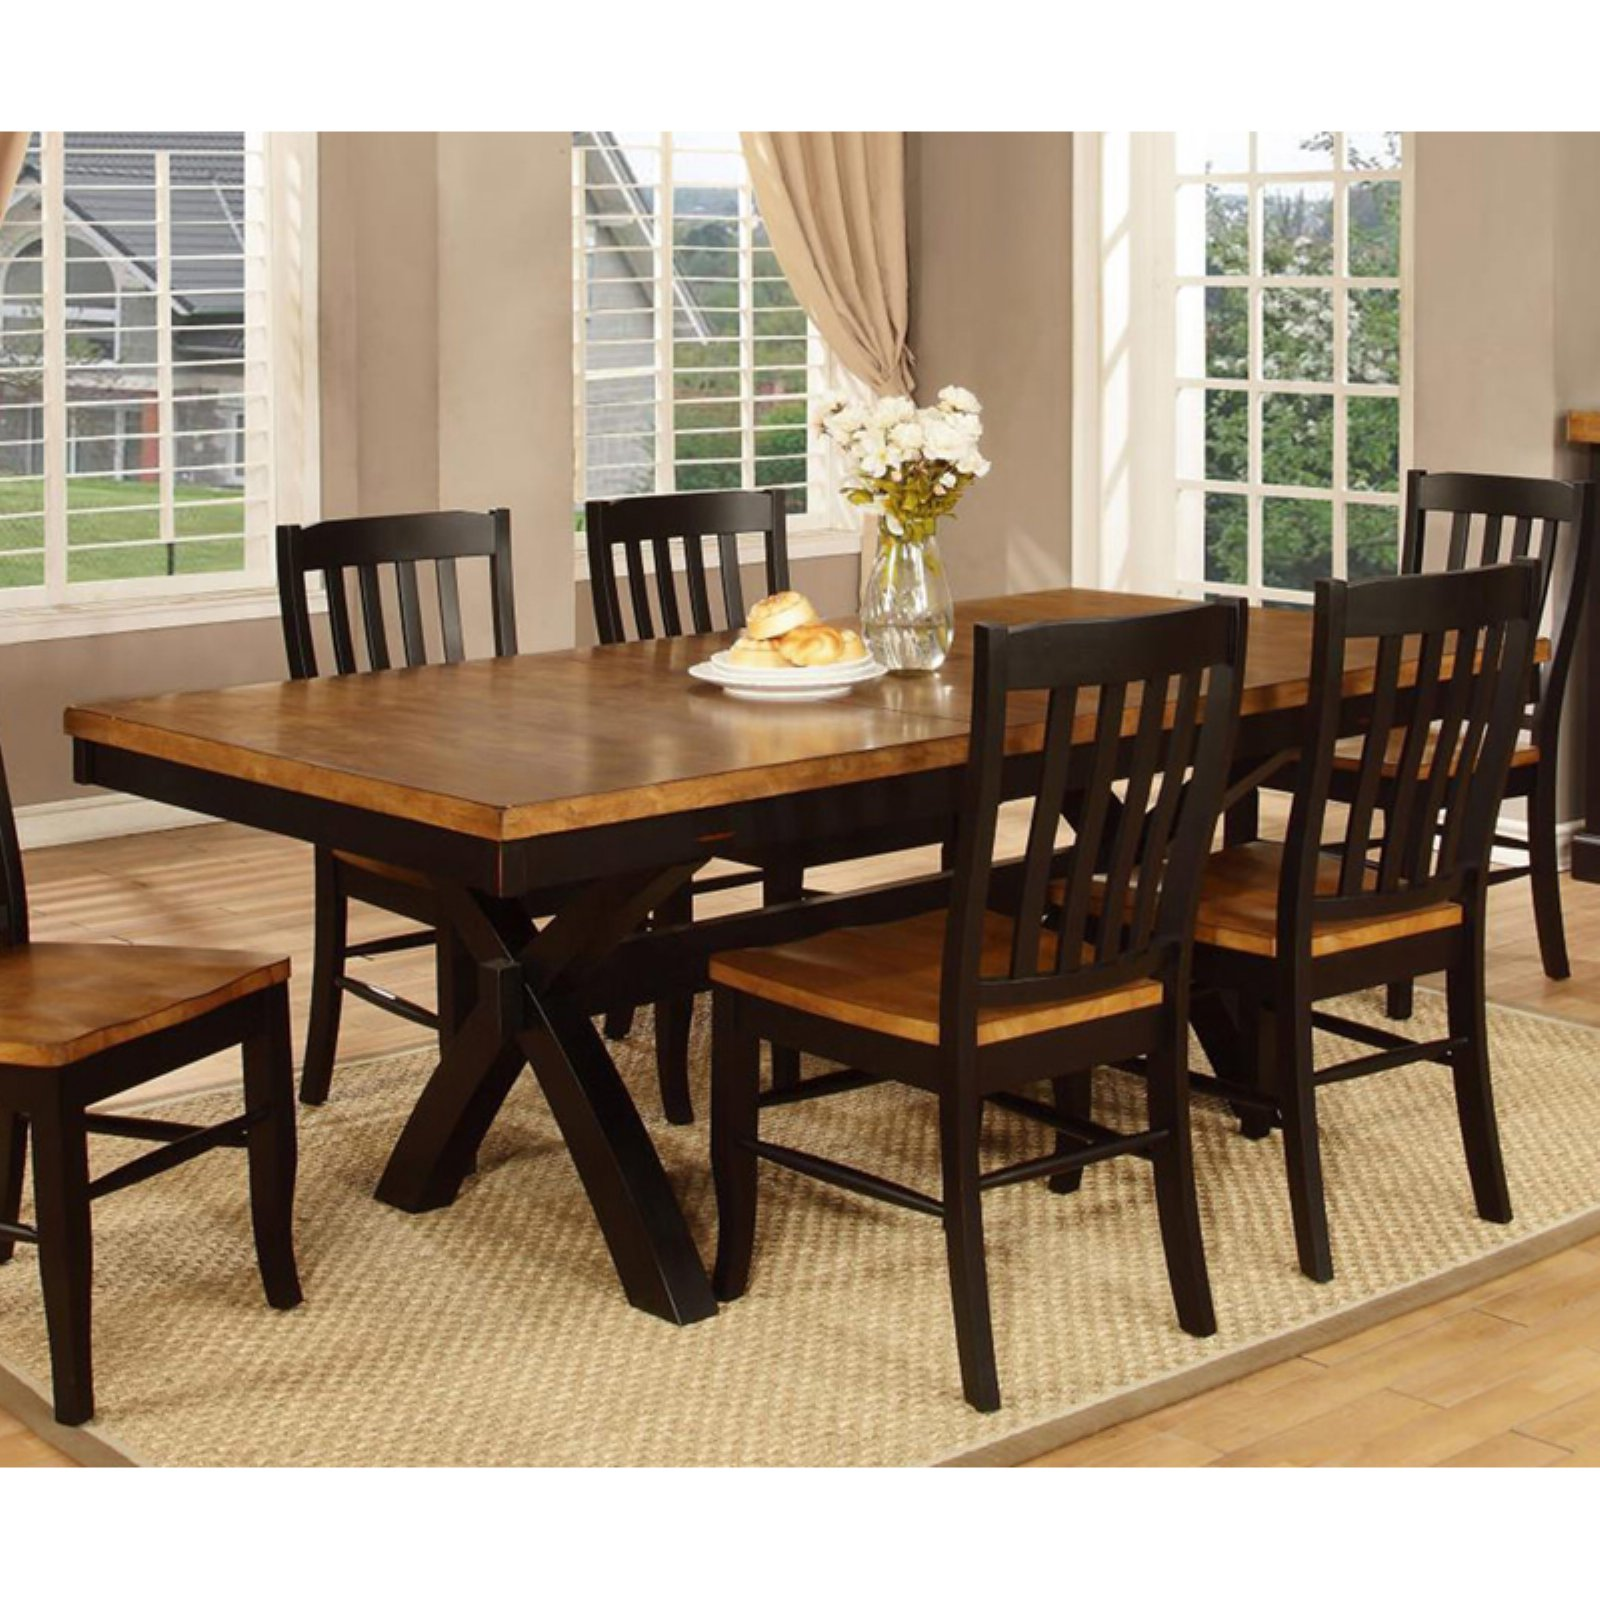 Chelsea Home Vail Dining Table